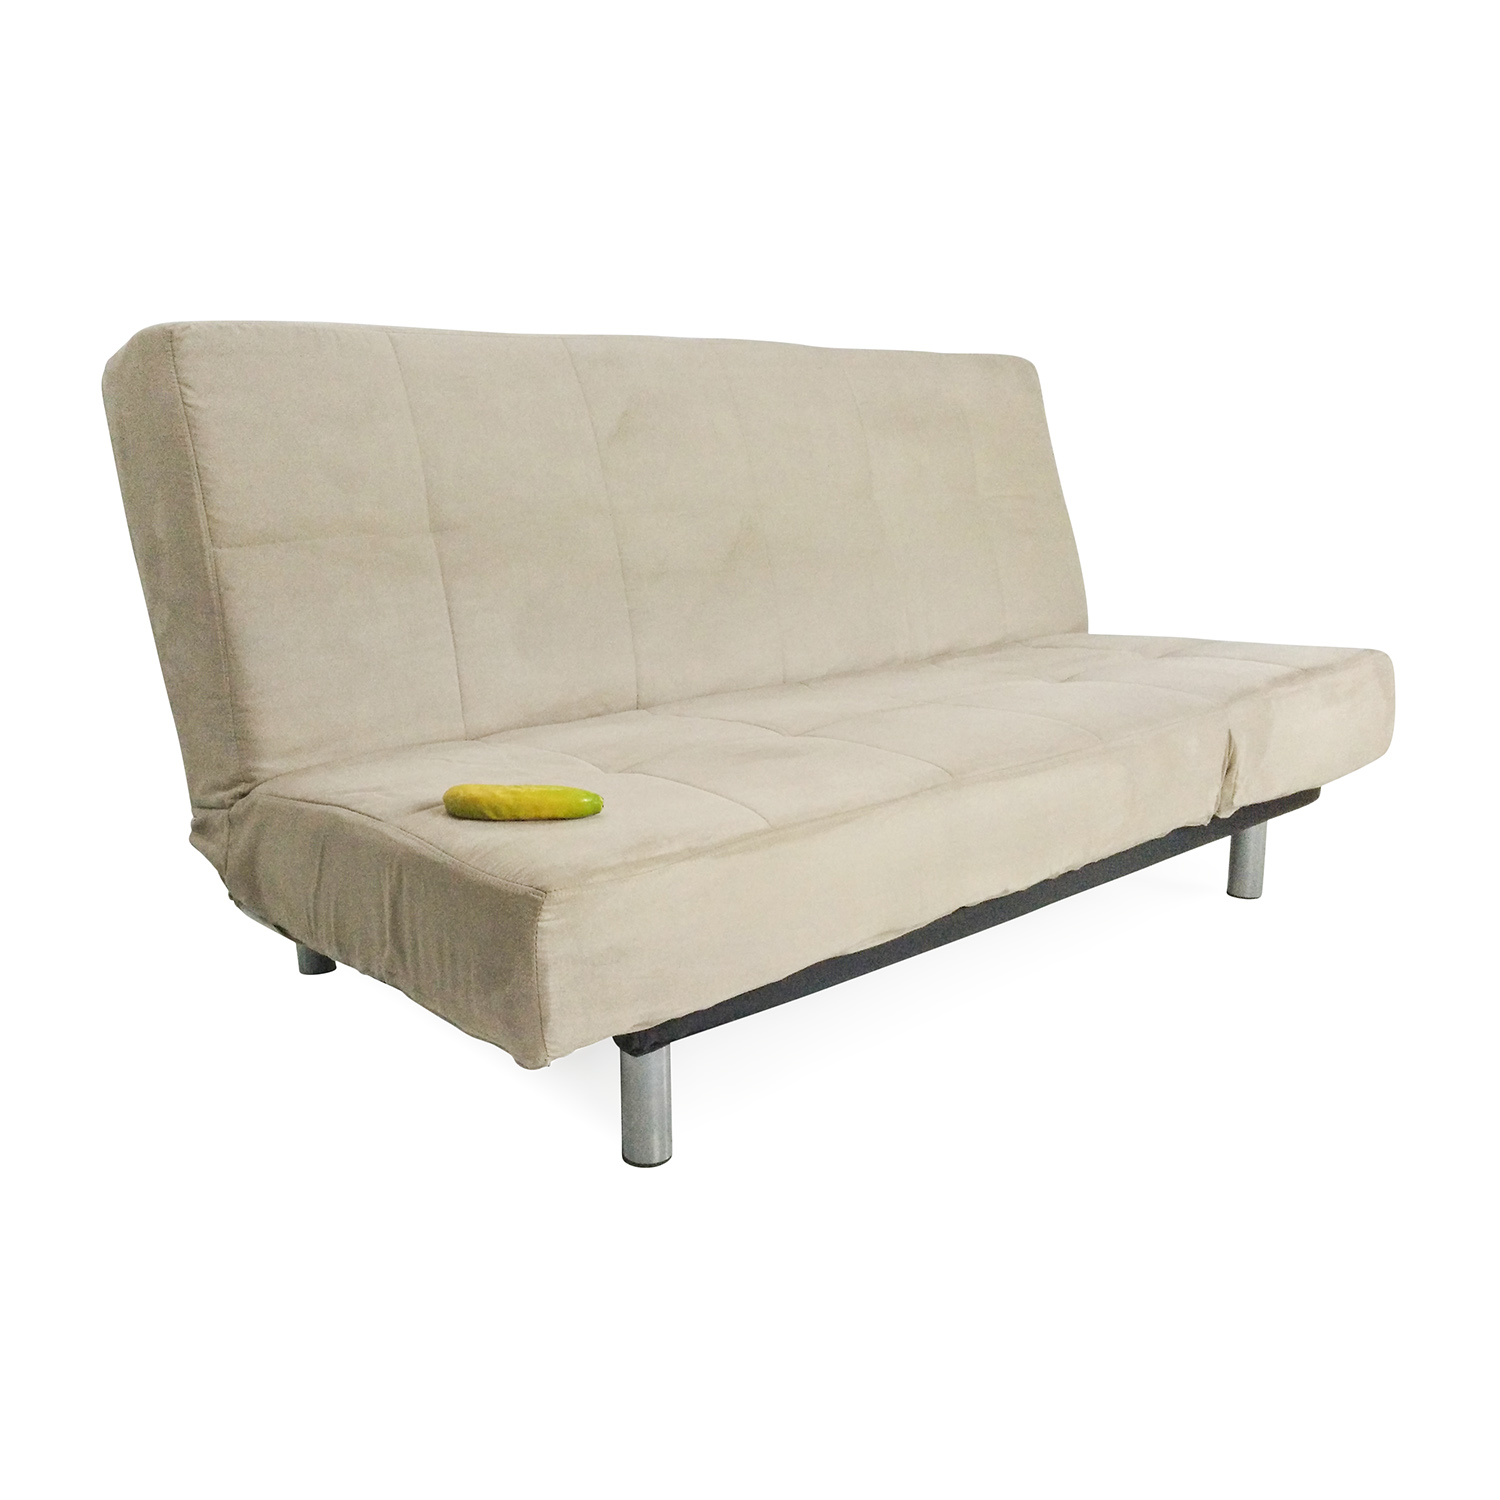 66 Off Westport Home Westport Home Sofa Bed Sofas